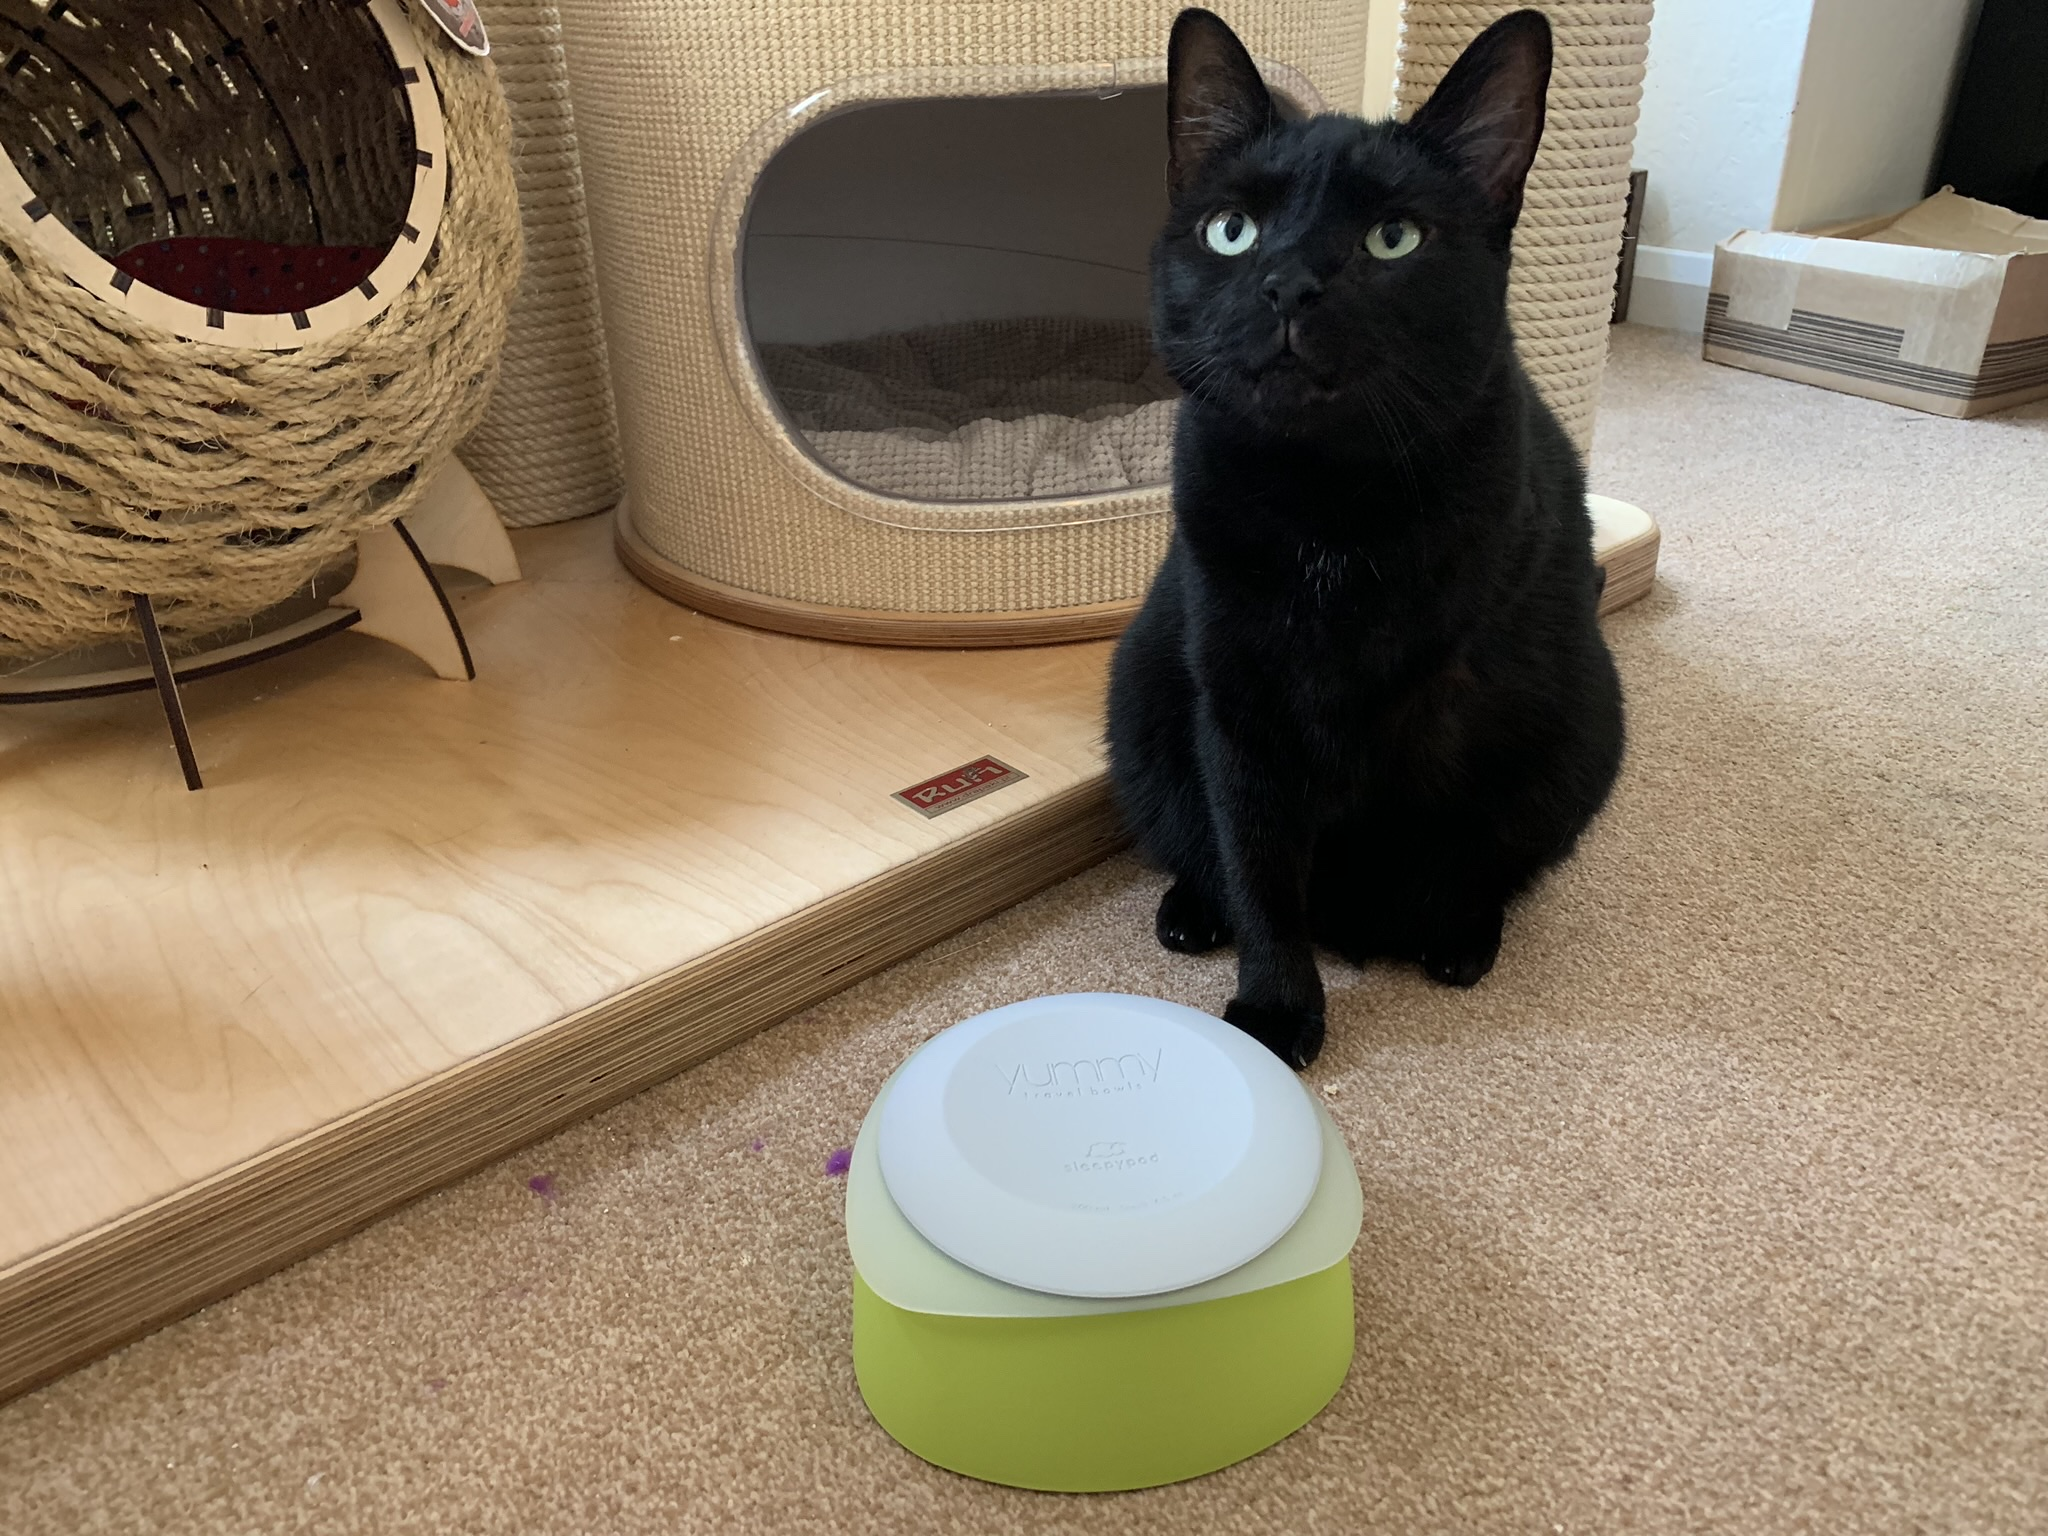 Nubia: I Have got a new Special Bowl!